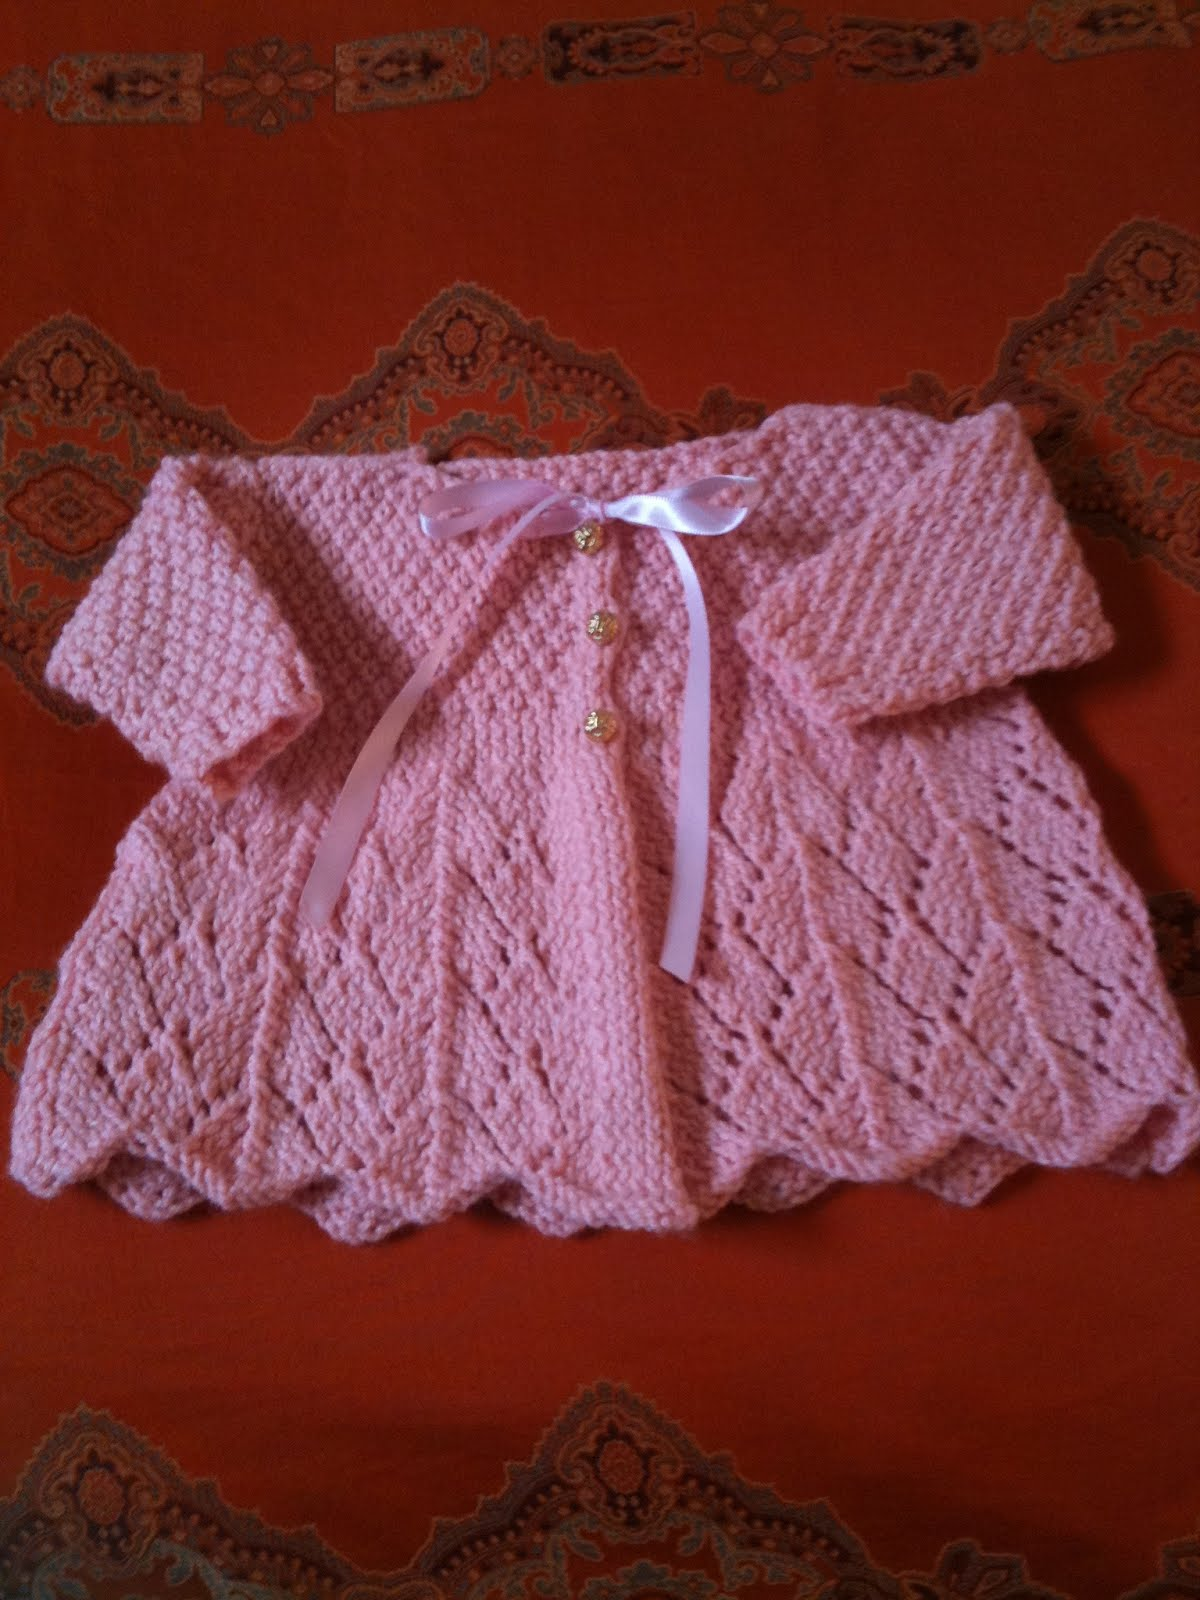 Lace Sweater Knitting Pattern : La Dolce Duchessa: Lace Baby Sweater